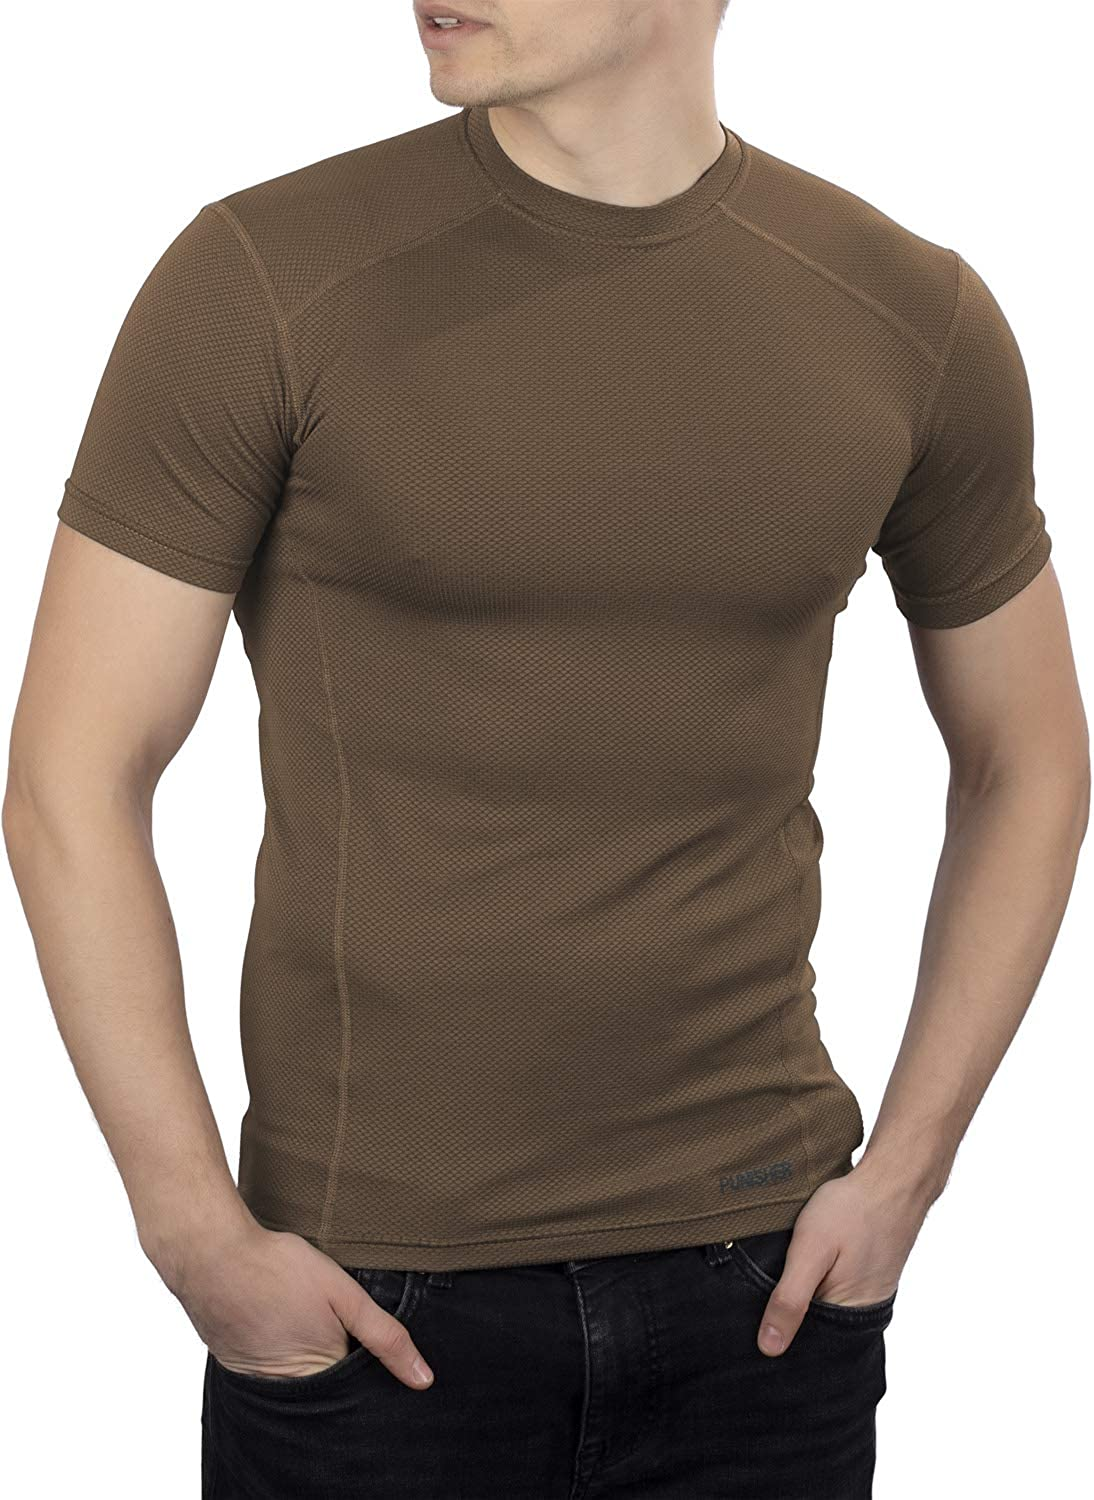 281Z Mens Military Moisture Wicking T-Shirt - Tactical Training Army Professional - Polartec Delta (Coyote Brown)